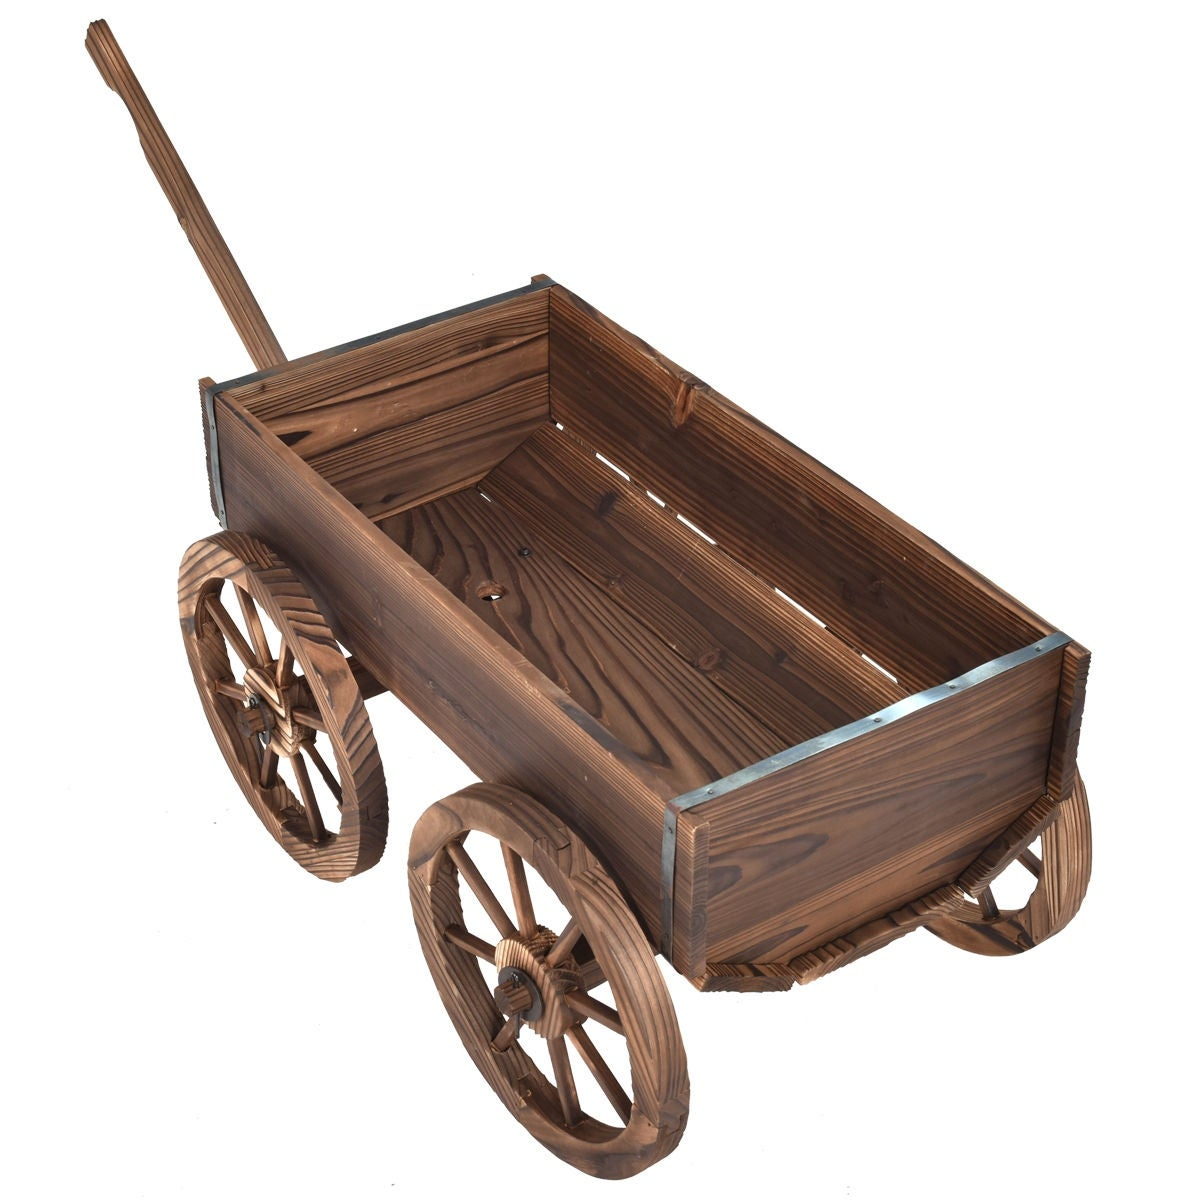 Shop Costway Wood Wagon Flower Planter Pot Stand W/Wheels Home ...